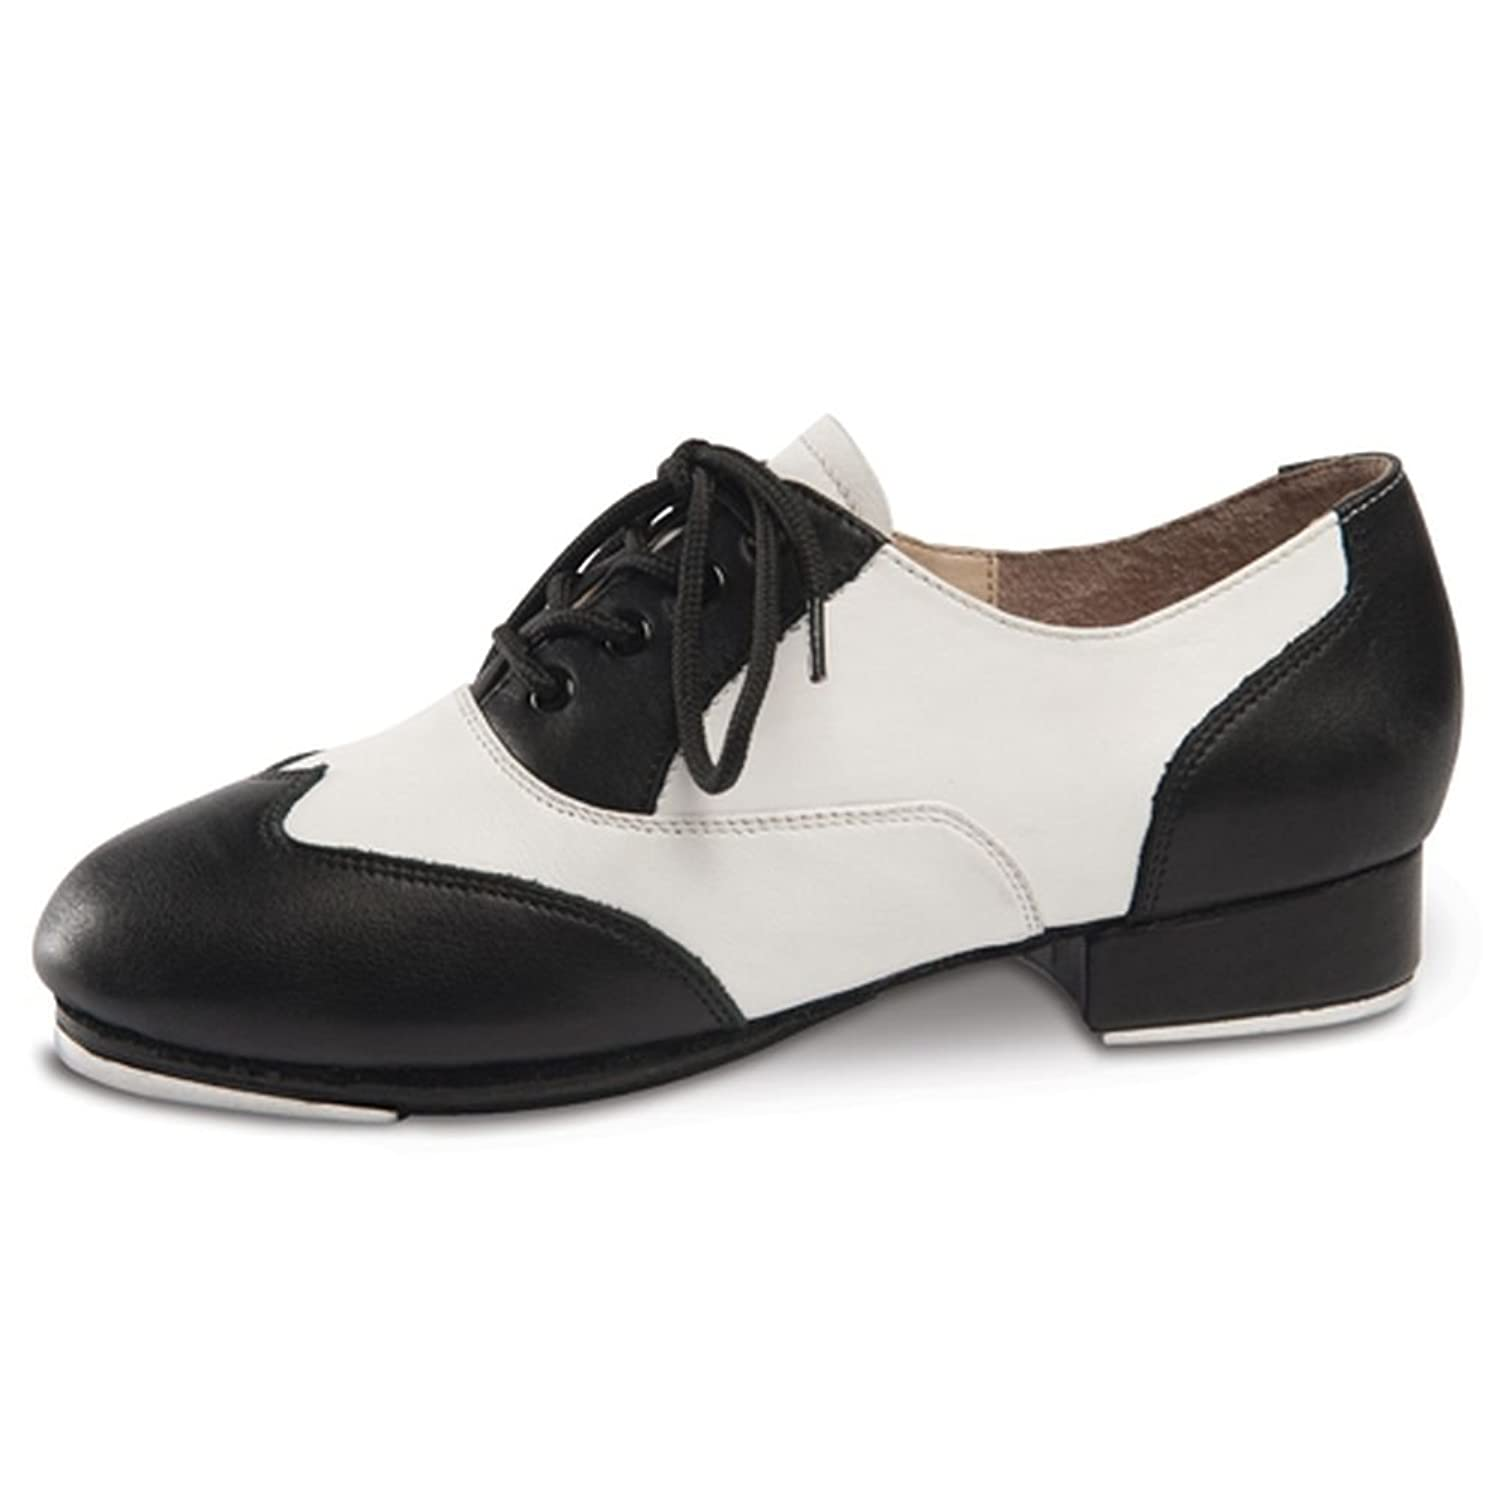 1950s Style Shoes | Heels, Flats, Saddle Shoes Danshuz Womens Black White Saddle Style Tap Dance Shoes Size 3-11 $119.95 AT vintagedancer.com